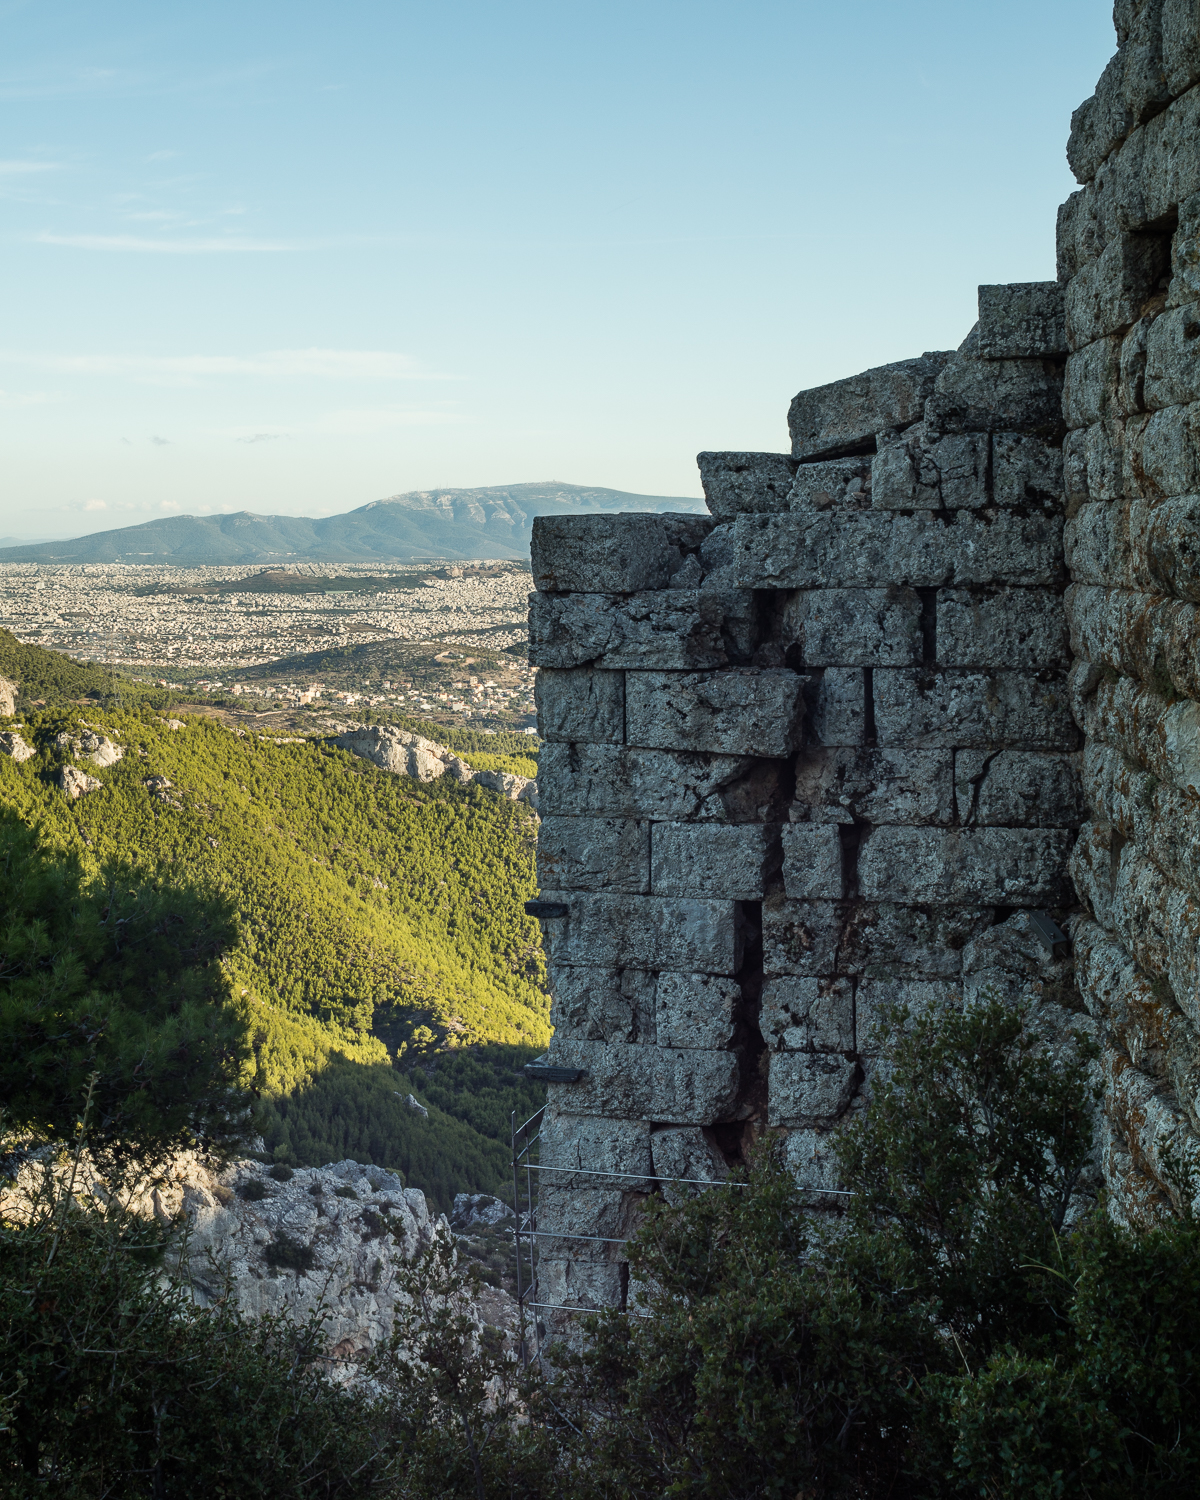 The ancient Fortress of Fili on Mt. Parnitha. Built around the 4th century BCE, the fortress consisted of four towers. Here the best preserved is seen overlooking the northern end of the city of Athens. View facing south with Mt. Hymettus in the background.